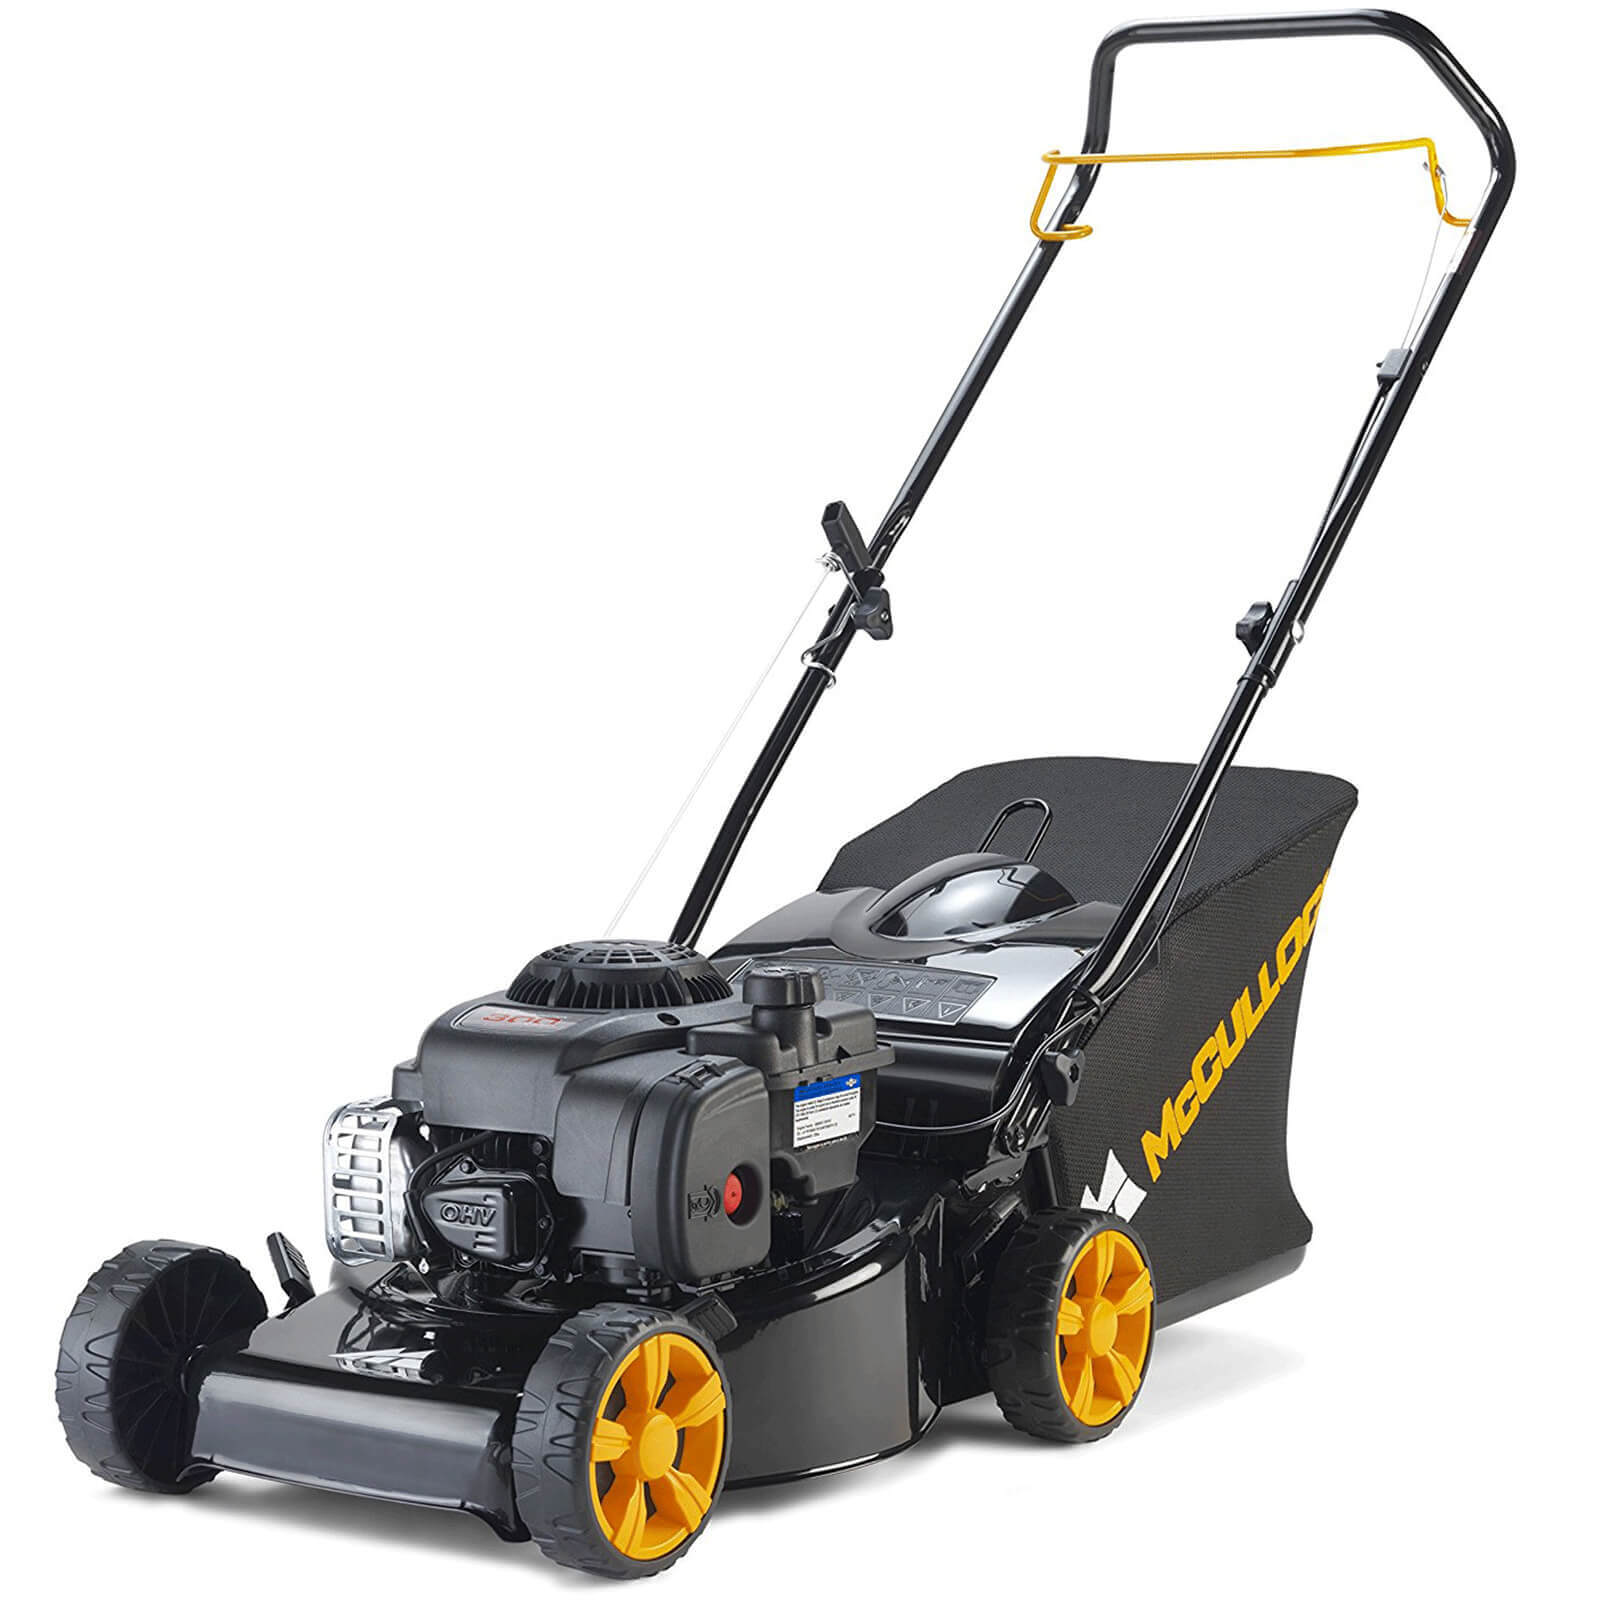 Image of McCulloch M40-125 CLASSIC PLUS Push Petrol Rotary Lawnmower 400mm